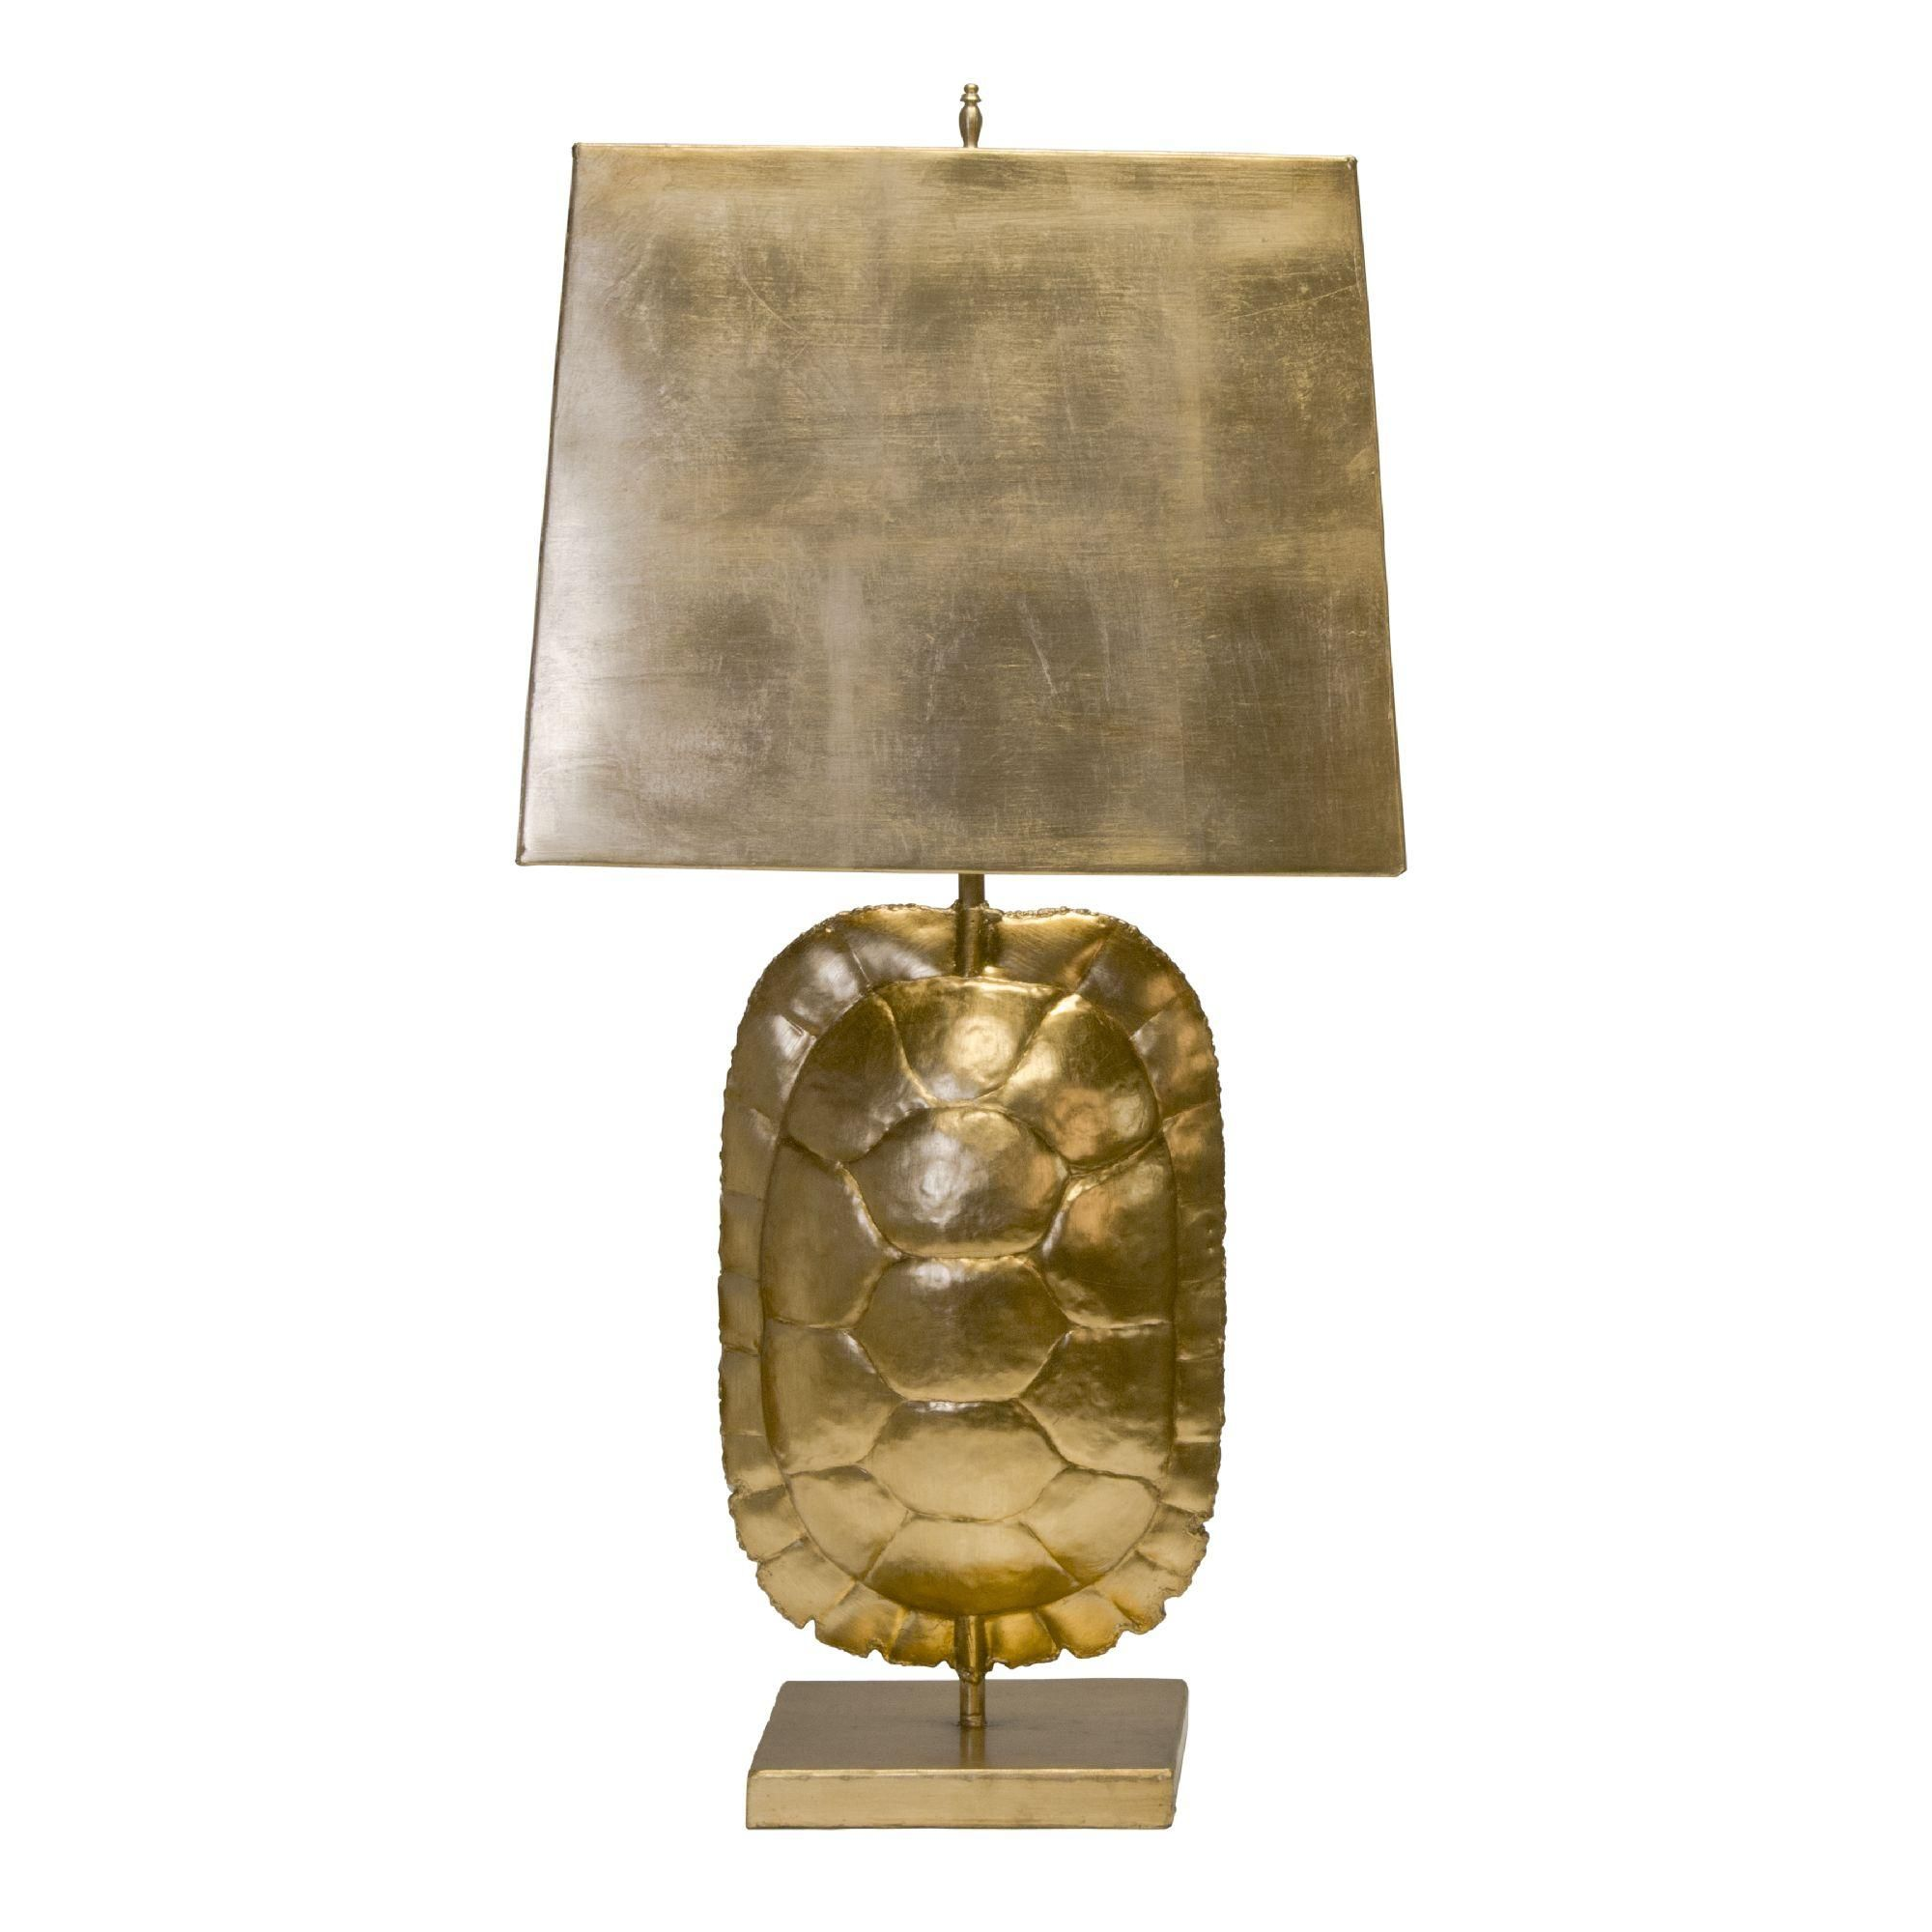 Gold Leaf Tortoise Shell Lamp With Rectangular Metal Shade Gold Turtle Lamp Table Lamps For Sale Shell Lamp Tortoise Table